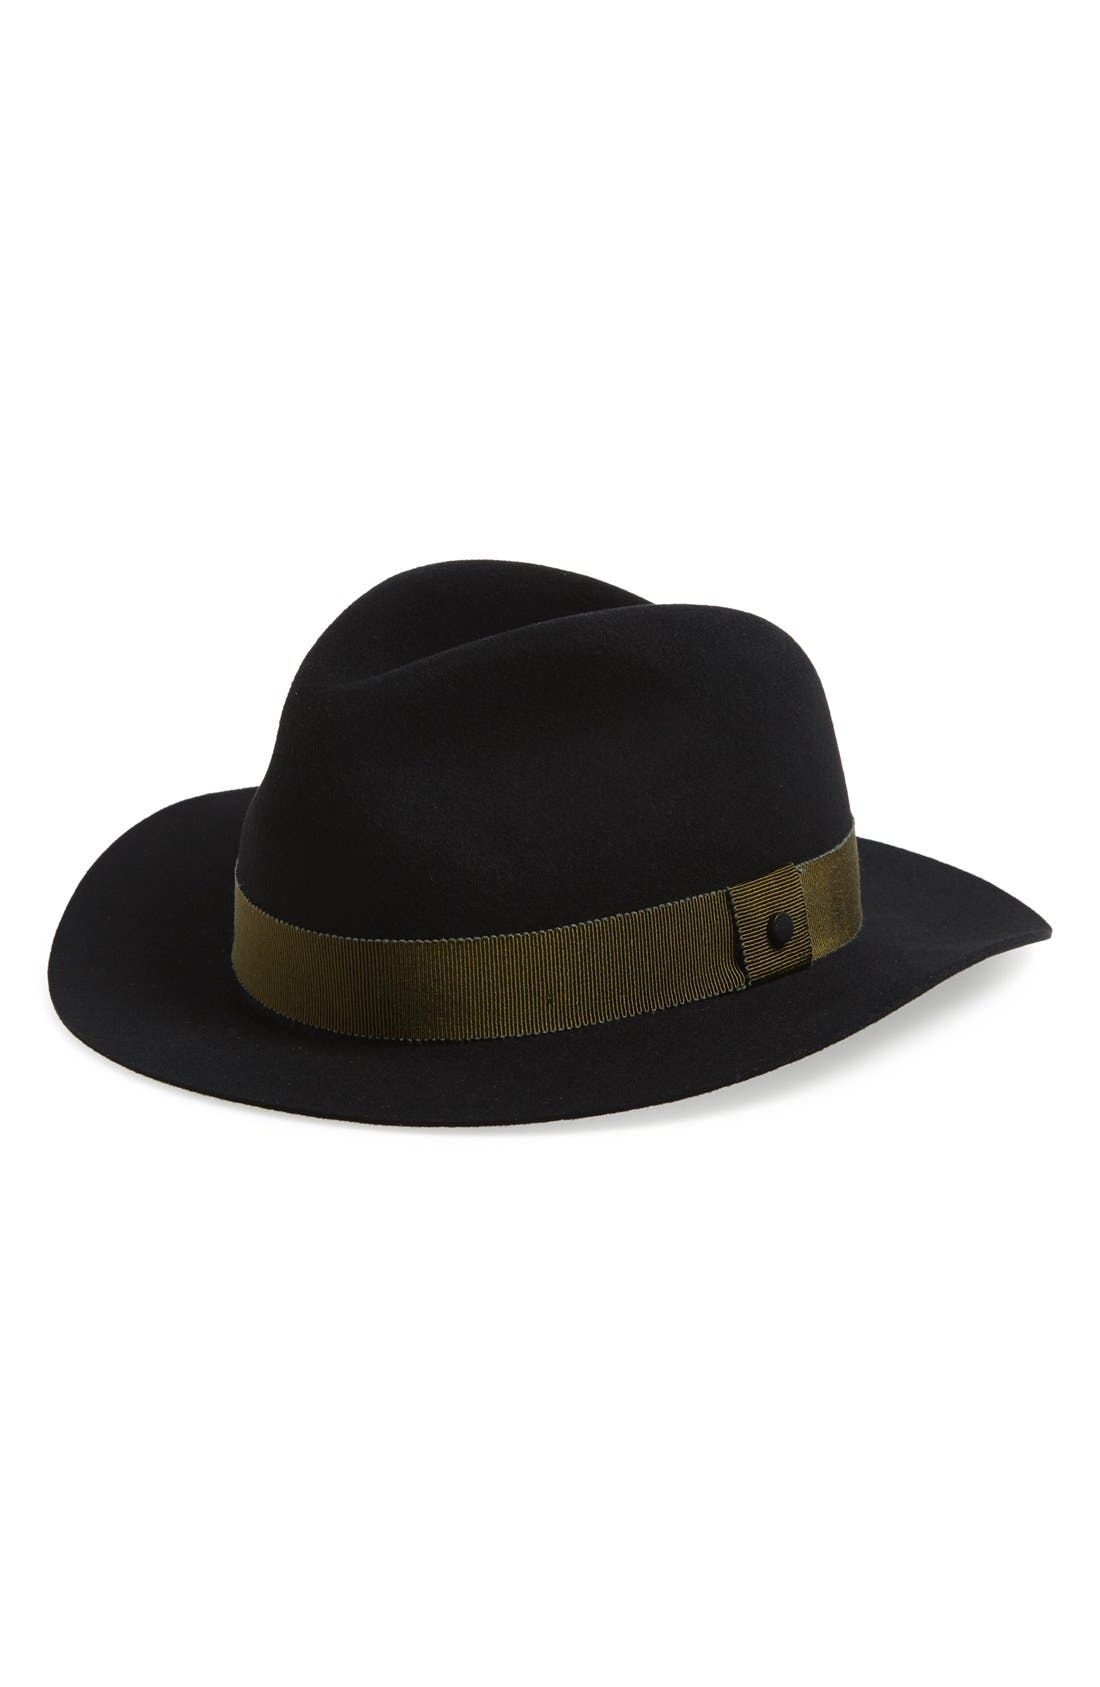 Alternate Image 1 Selected - rag & bone Floppy Brim Wool Fedora